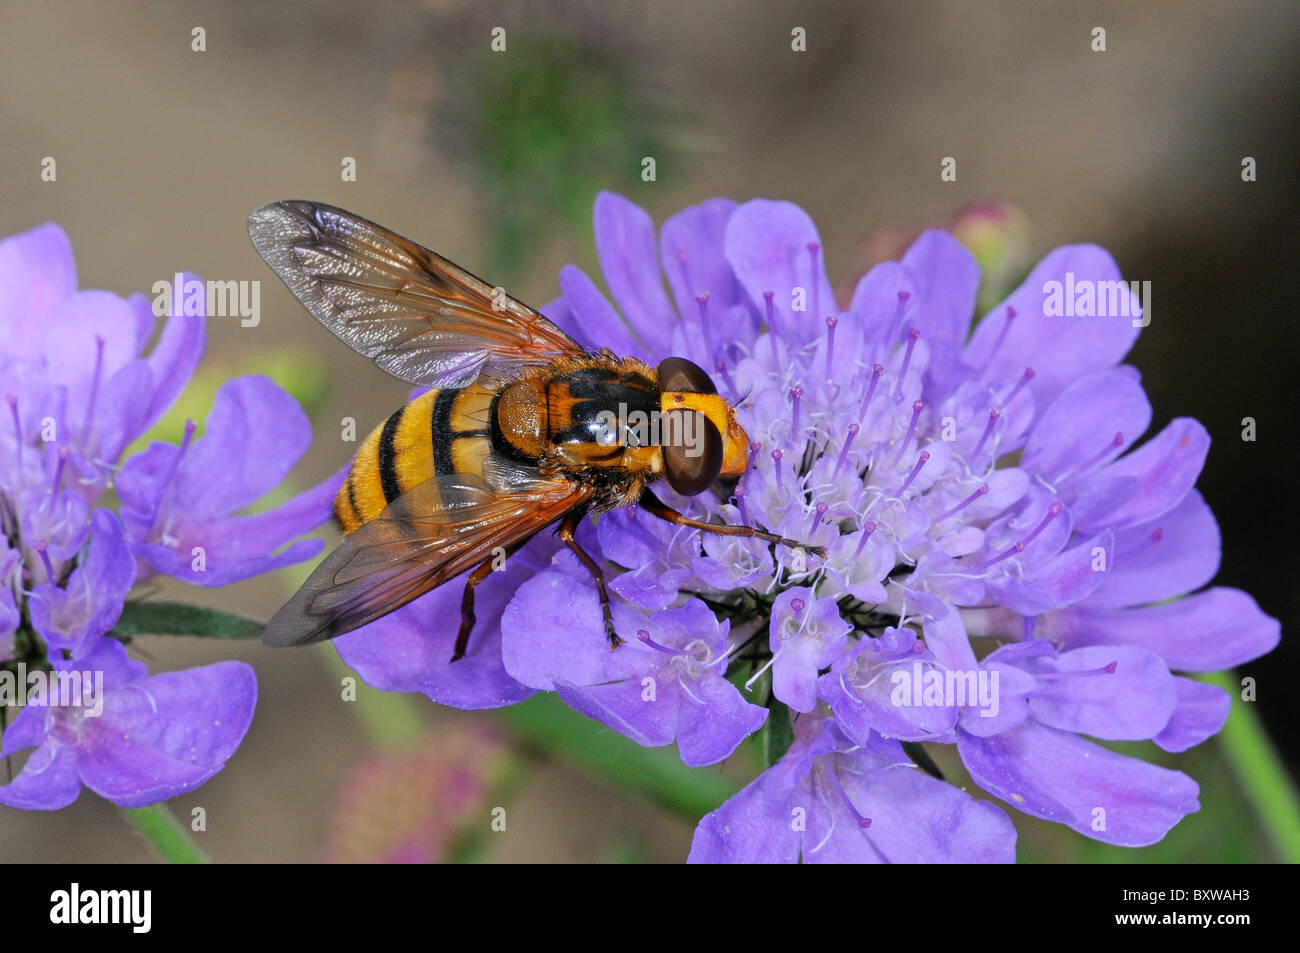 Hover-fly (Volucella species) feeding opn scabious flower, Oxfordshire - Stock Image